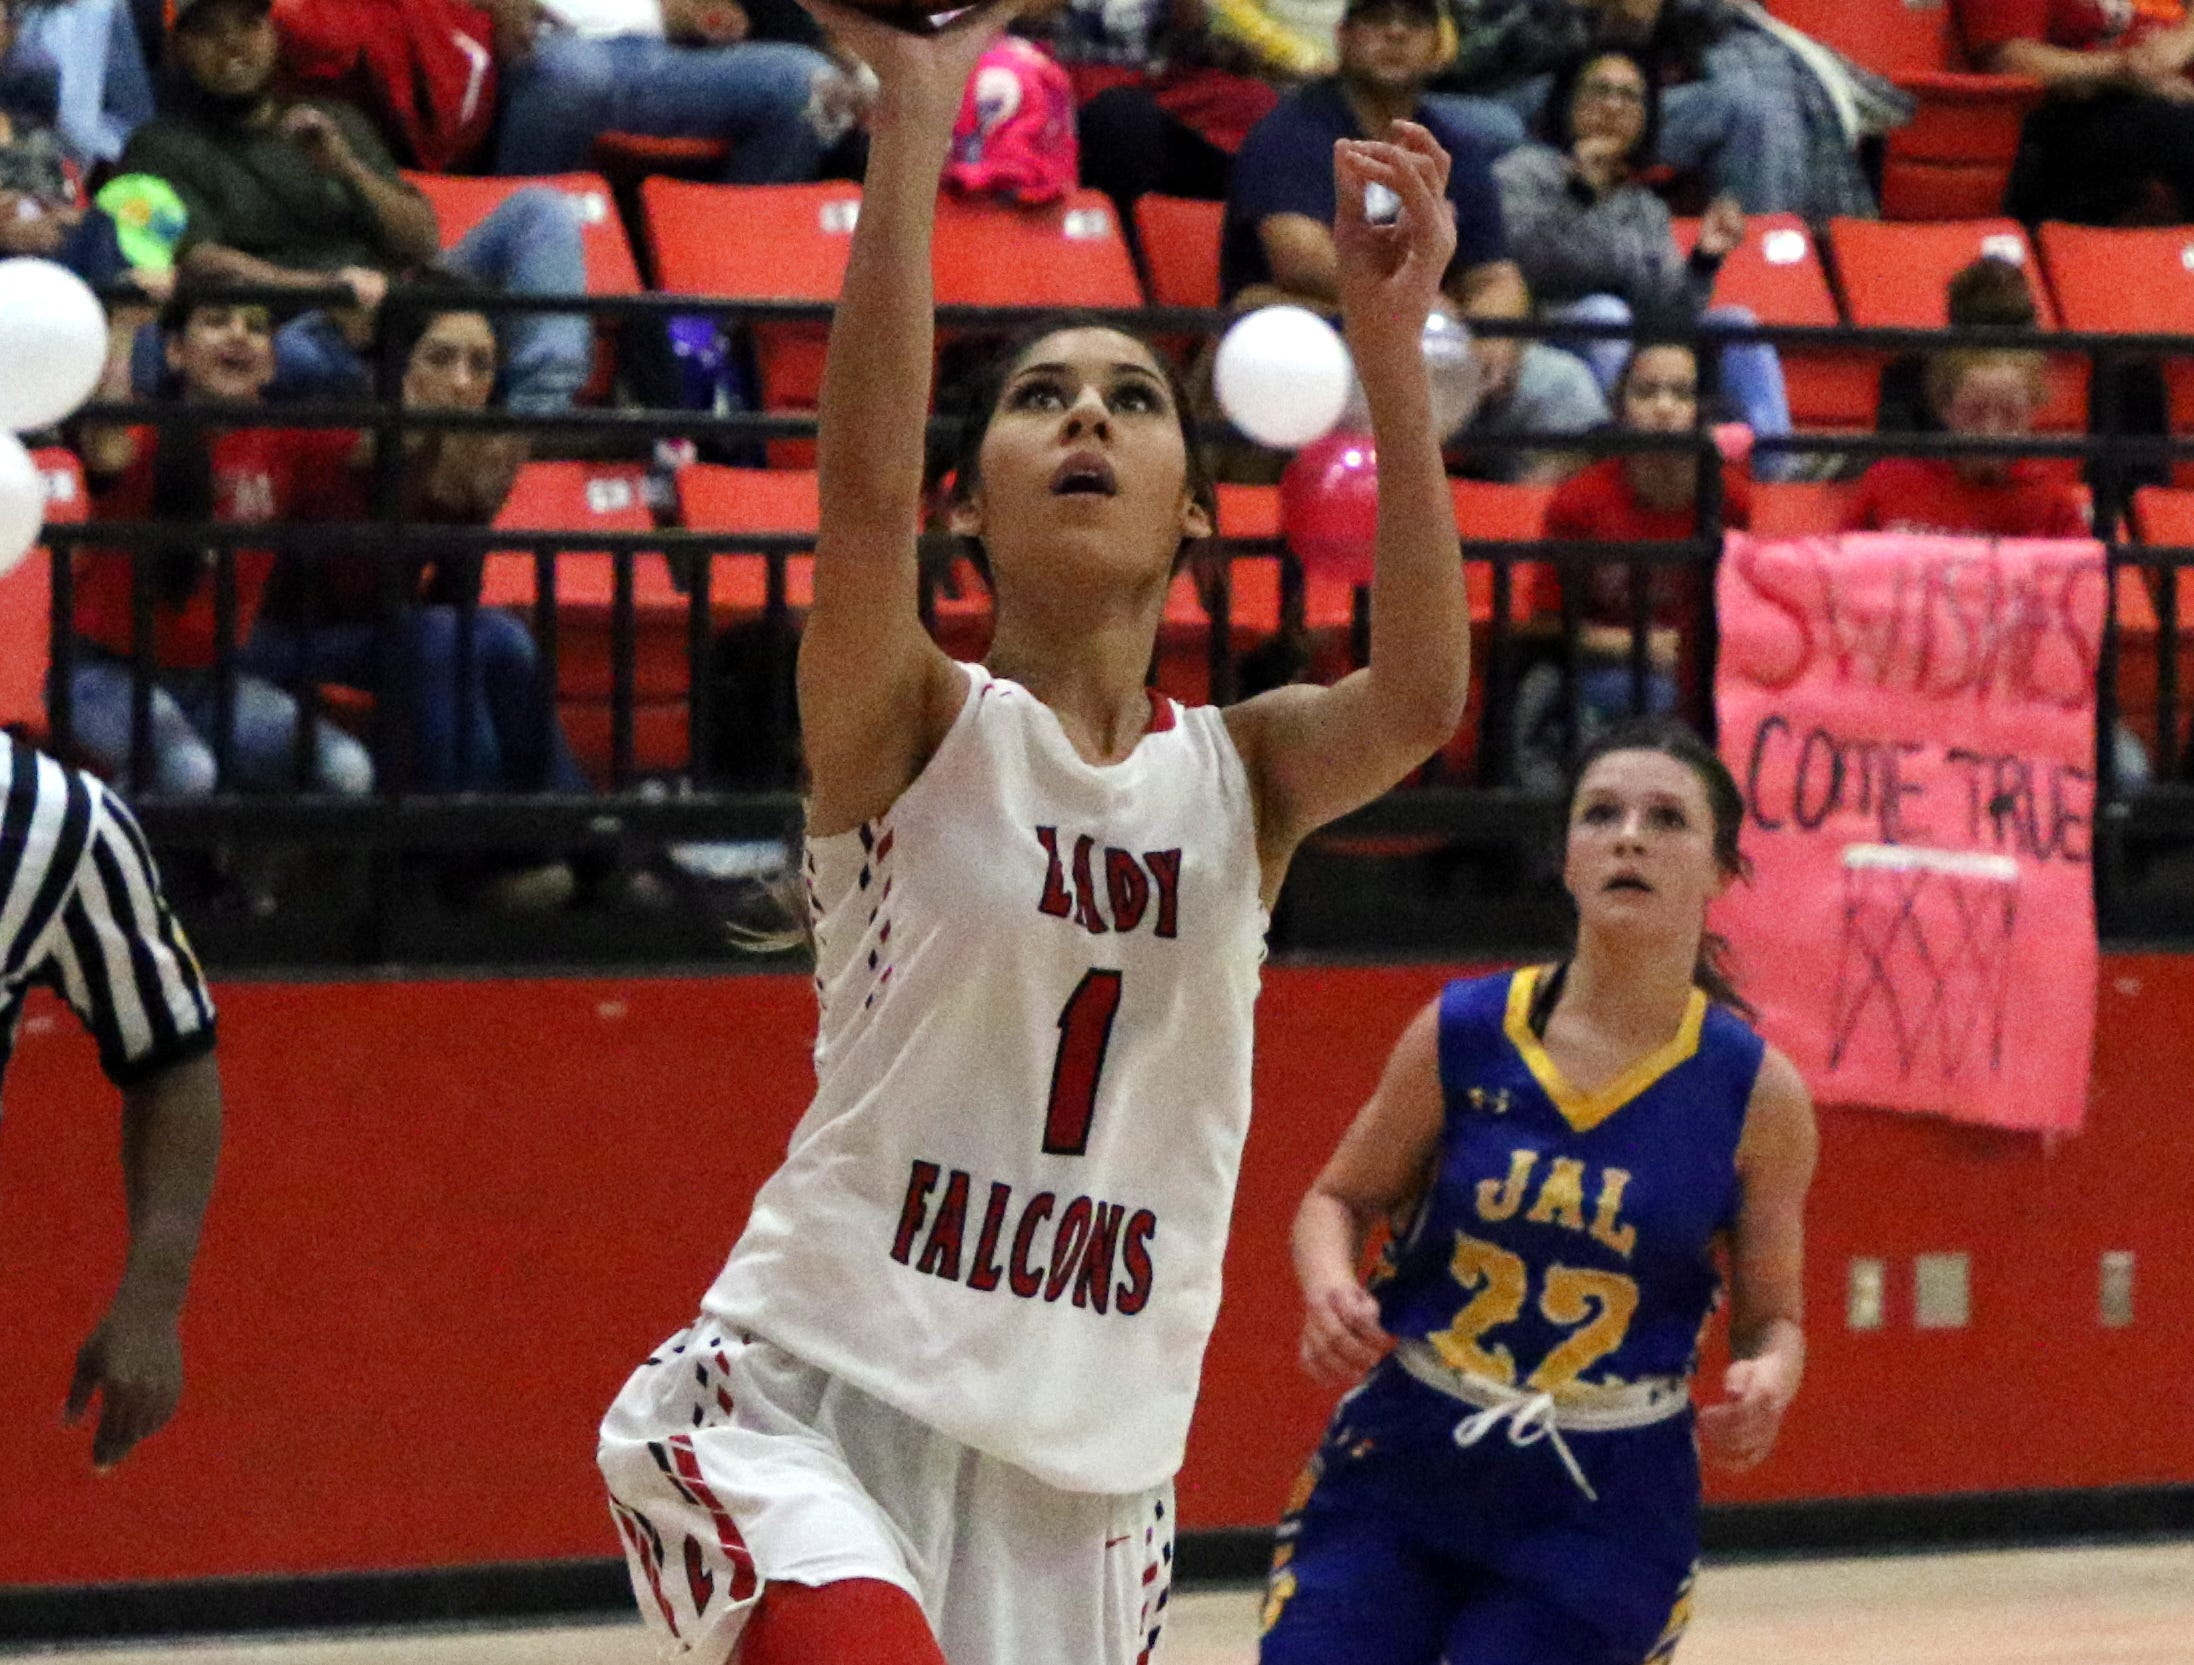 Yara Franco gets a layup against Jal during Saturday's Class 4-2A district title game. She led all scorers with 18 points.